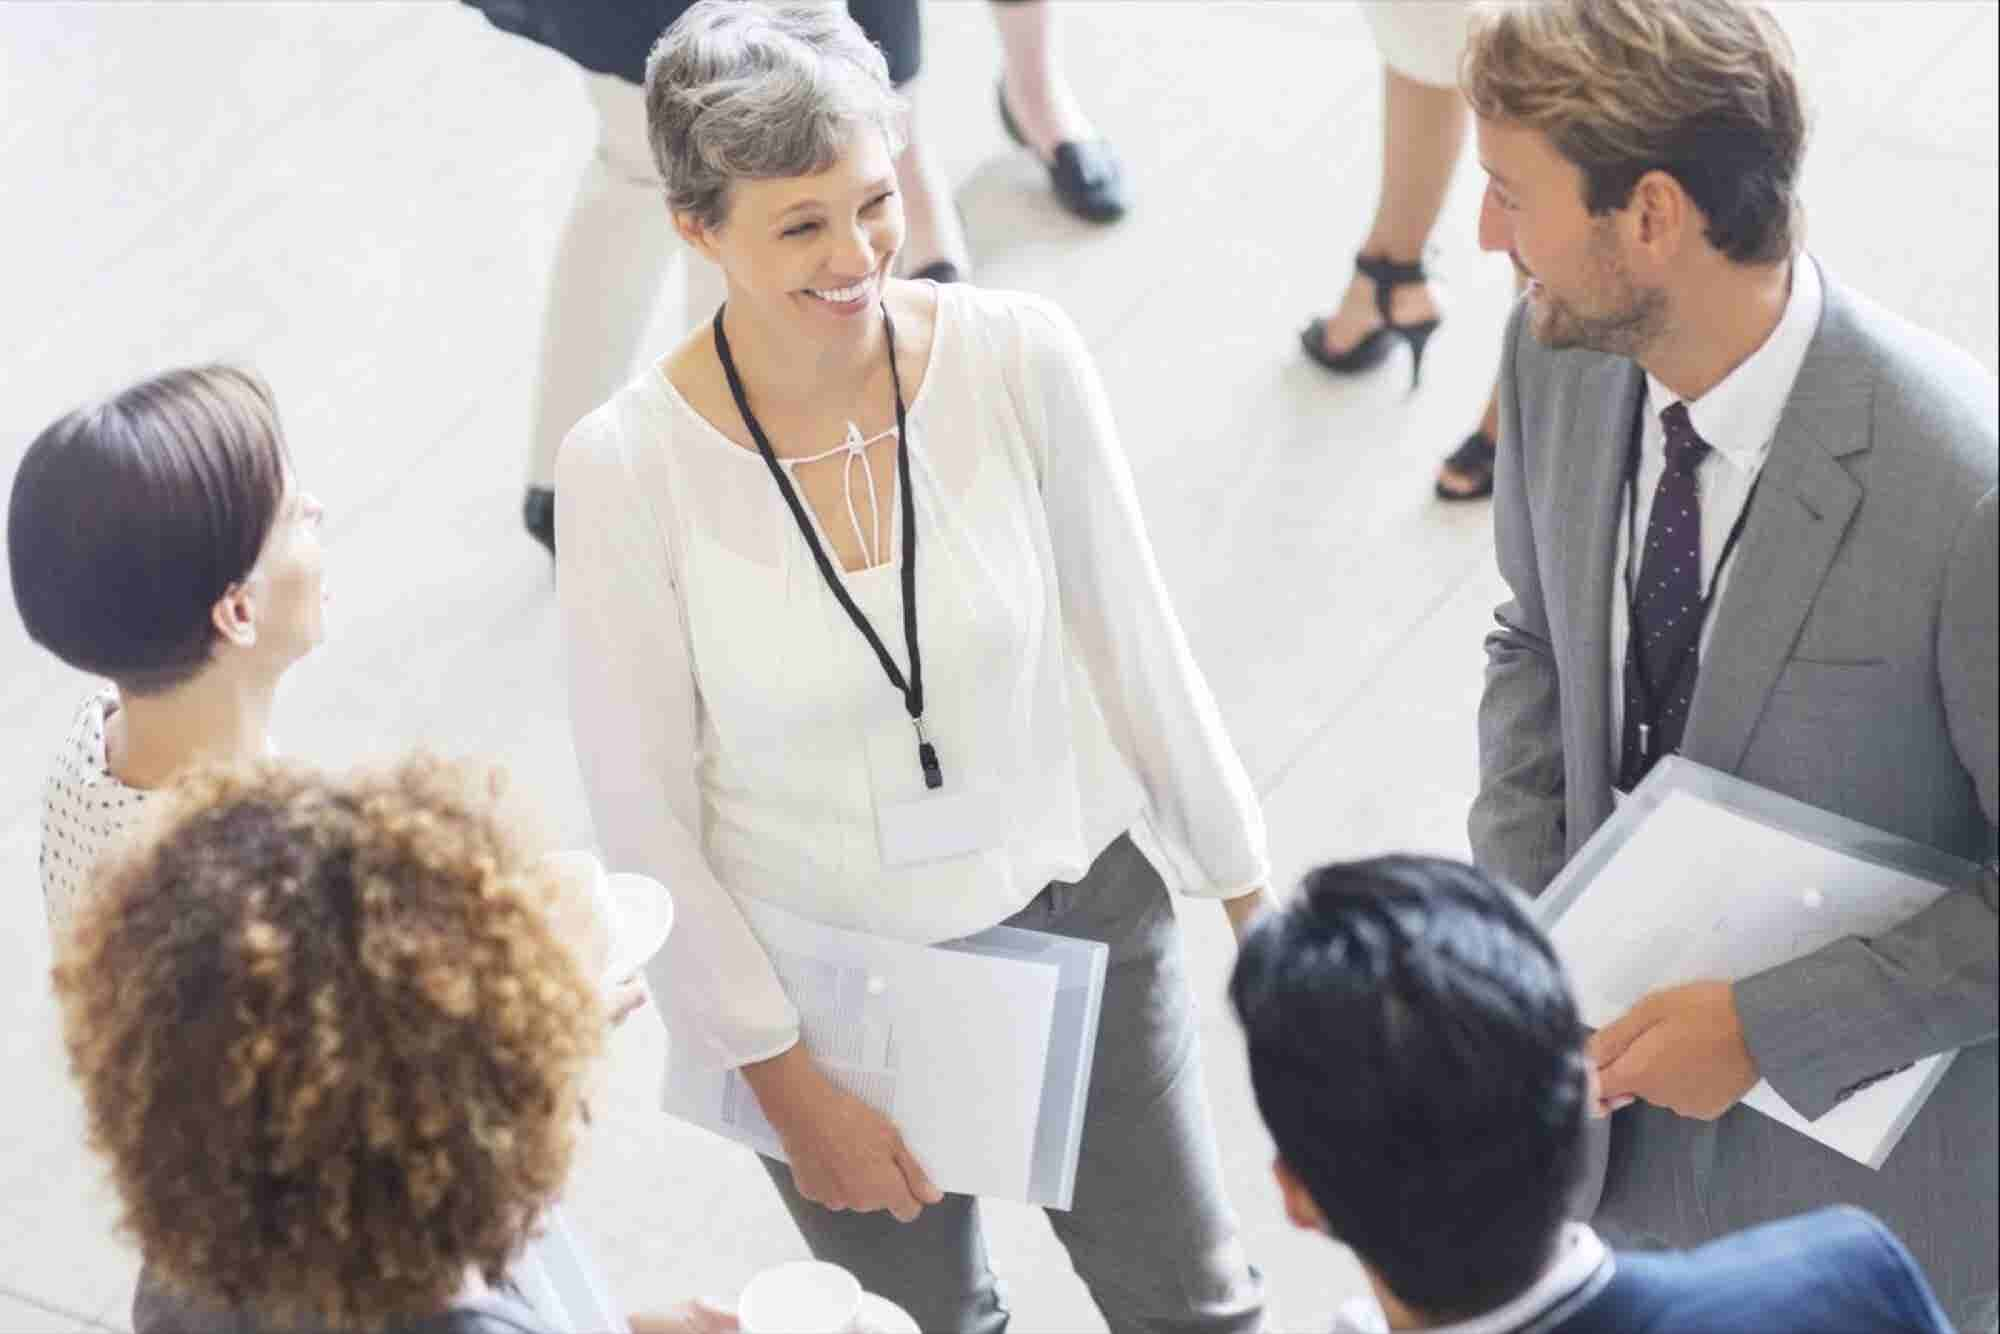 How to Improve Your Networking Skills